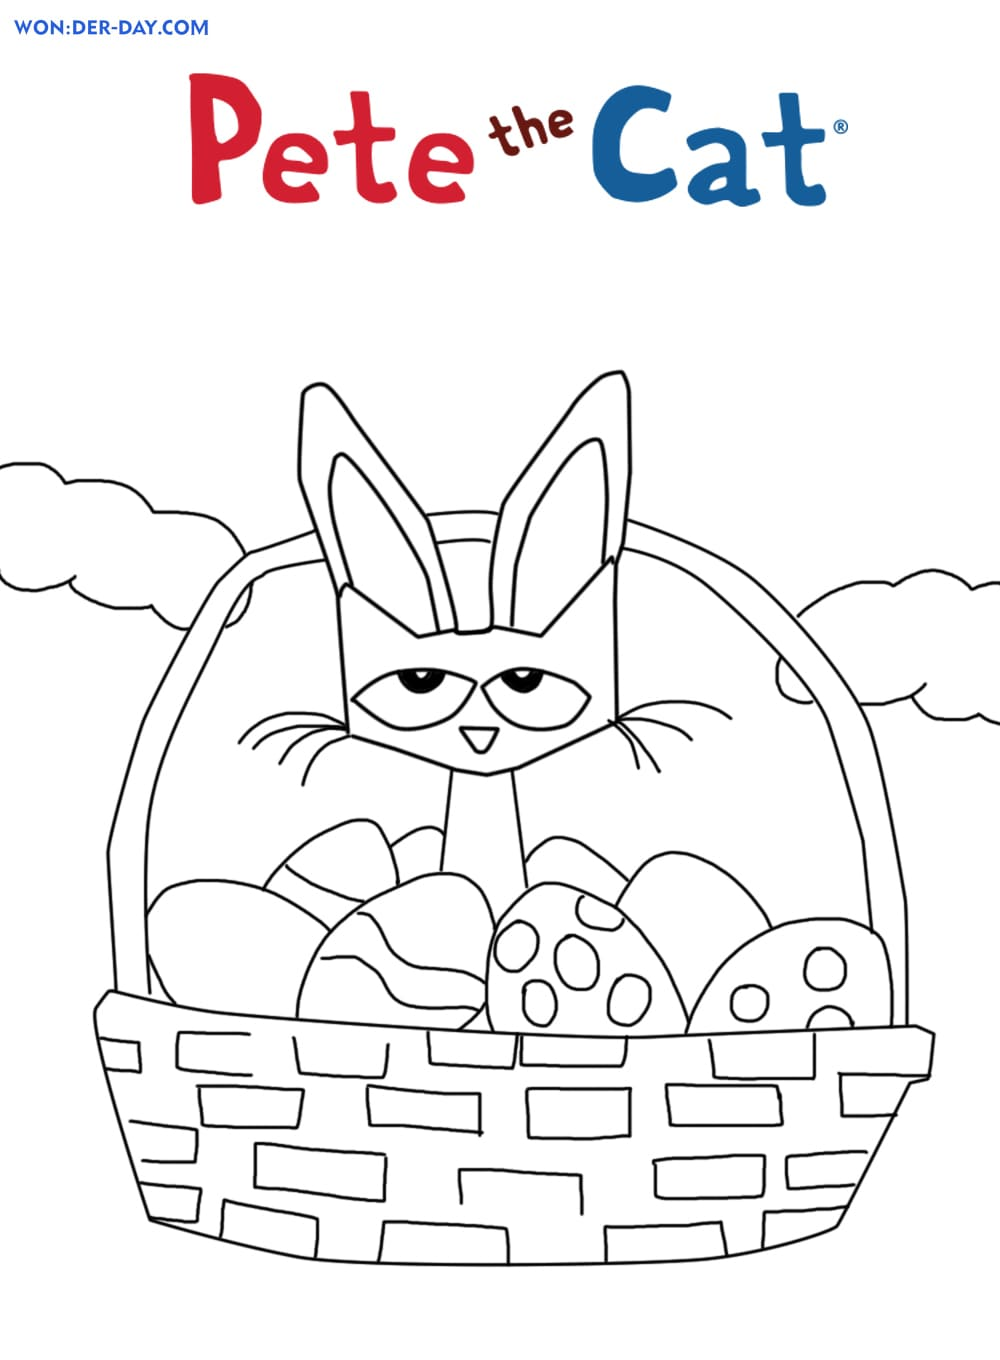 Pete the Cat coloring pages. Free coloring pages   WONDER DAY ...